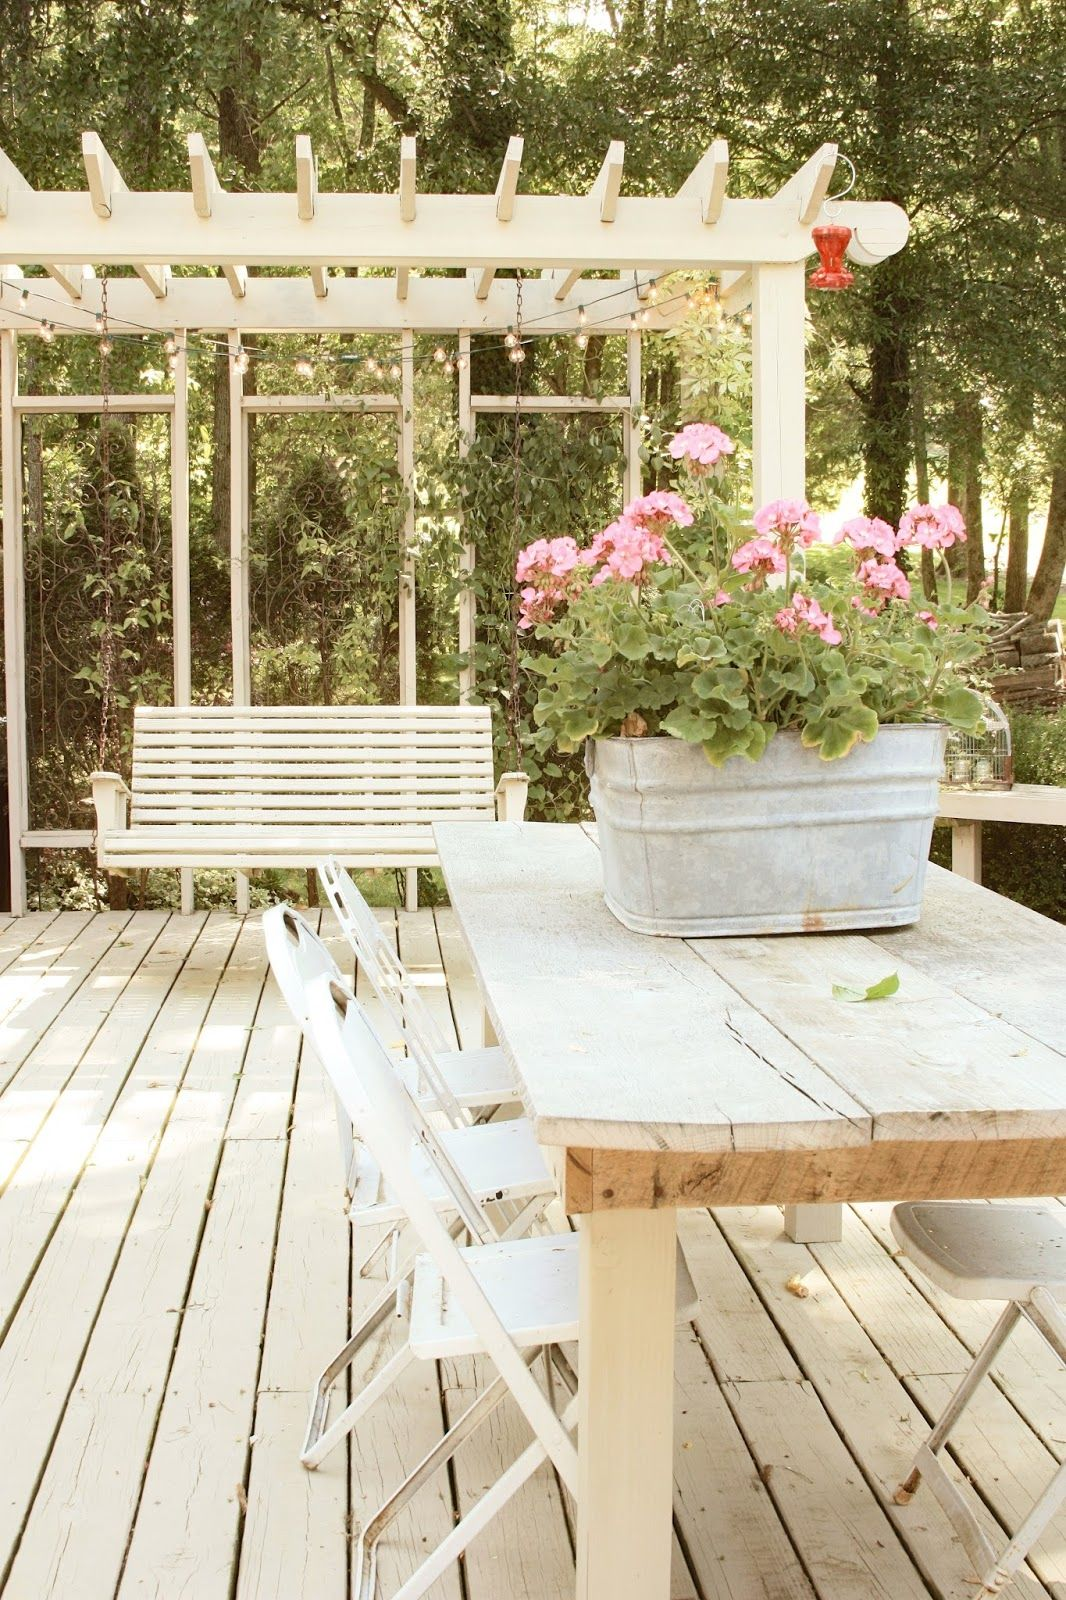 erin's art and gardens | arbor, porch swing, light color ...